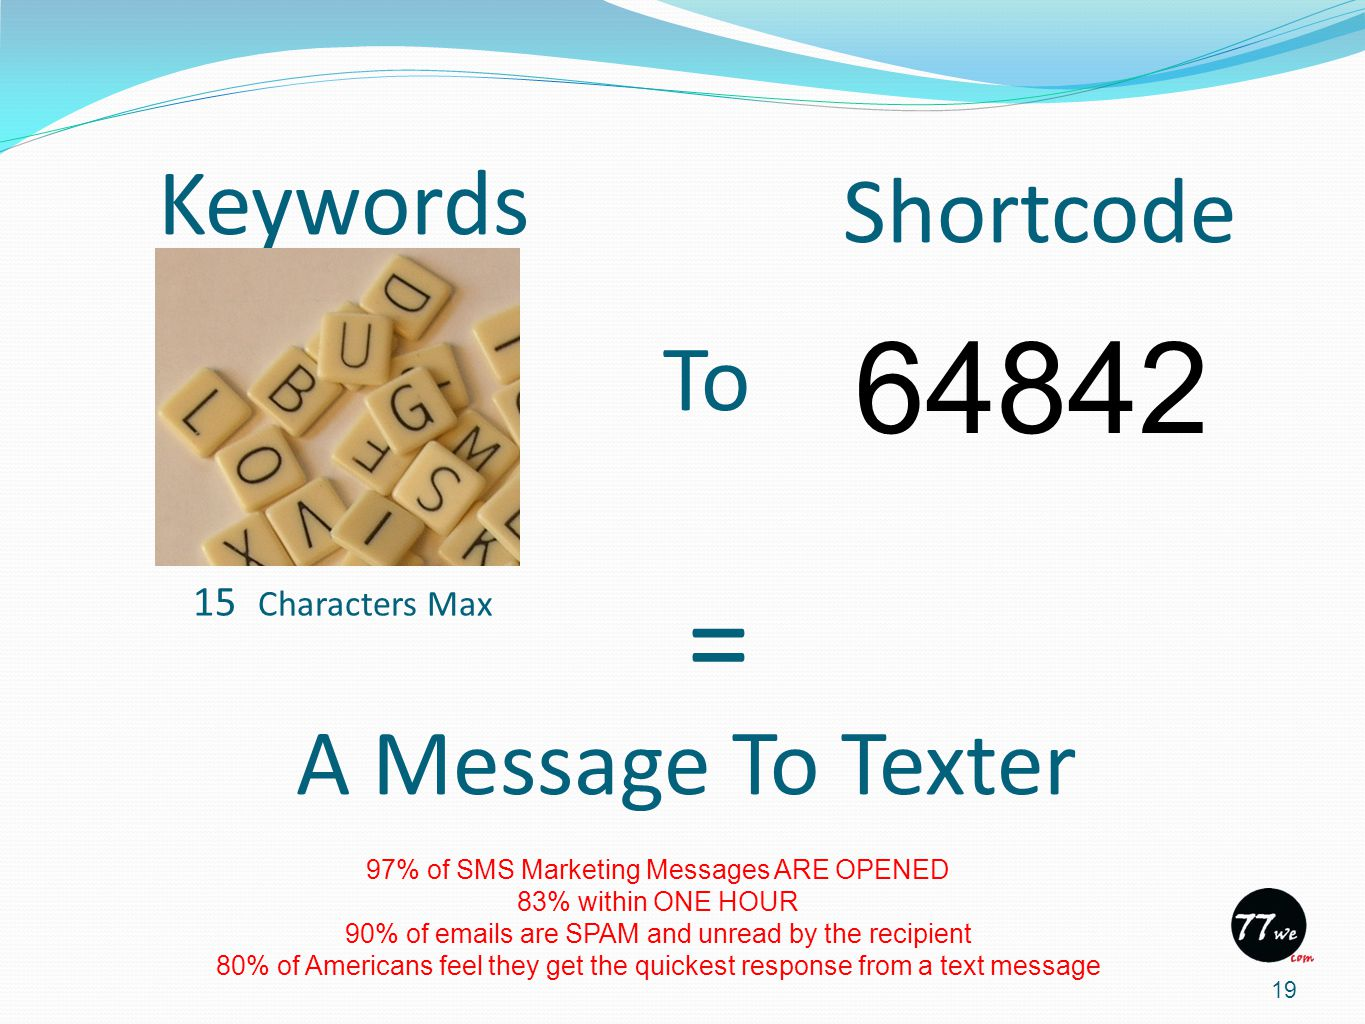 Keywords 19 Shortcode A Message To Texter = To 64842 15 Characters Max 97% of SMS Marketing Messages ARE OPENED 83% within ONE HOUR 90% of emails are SPAM and unread by the recipient 80% of Americans feel they get the quickest response from a text message